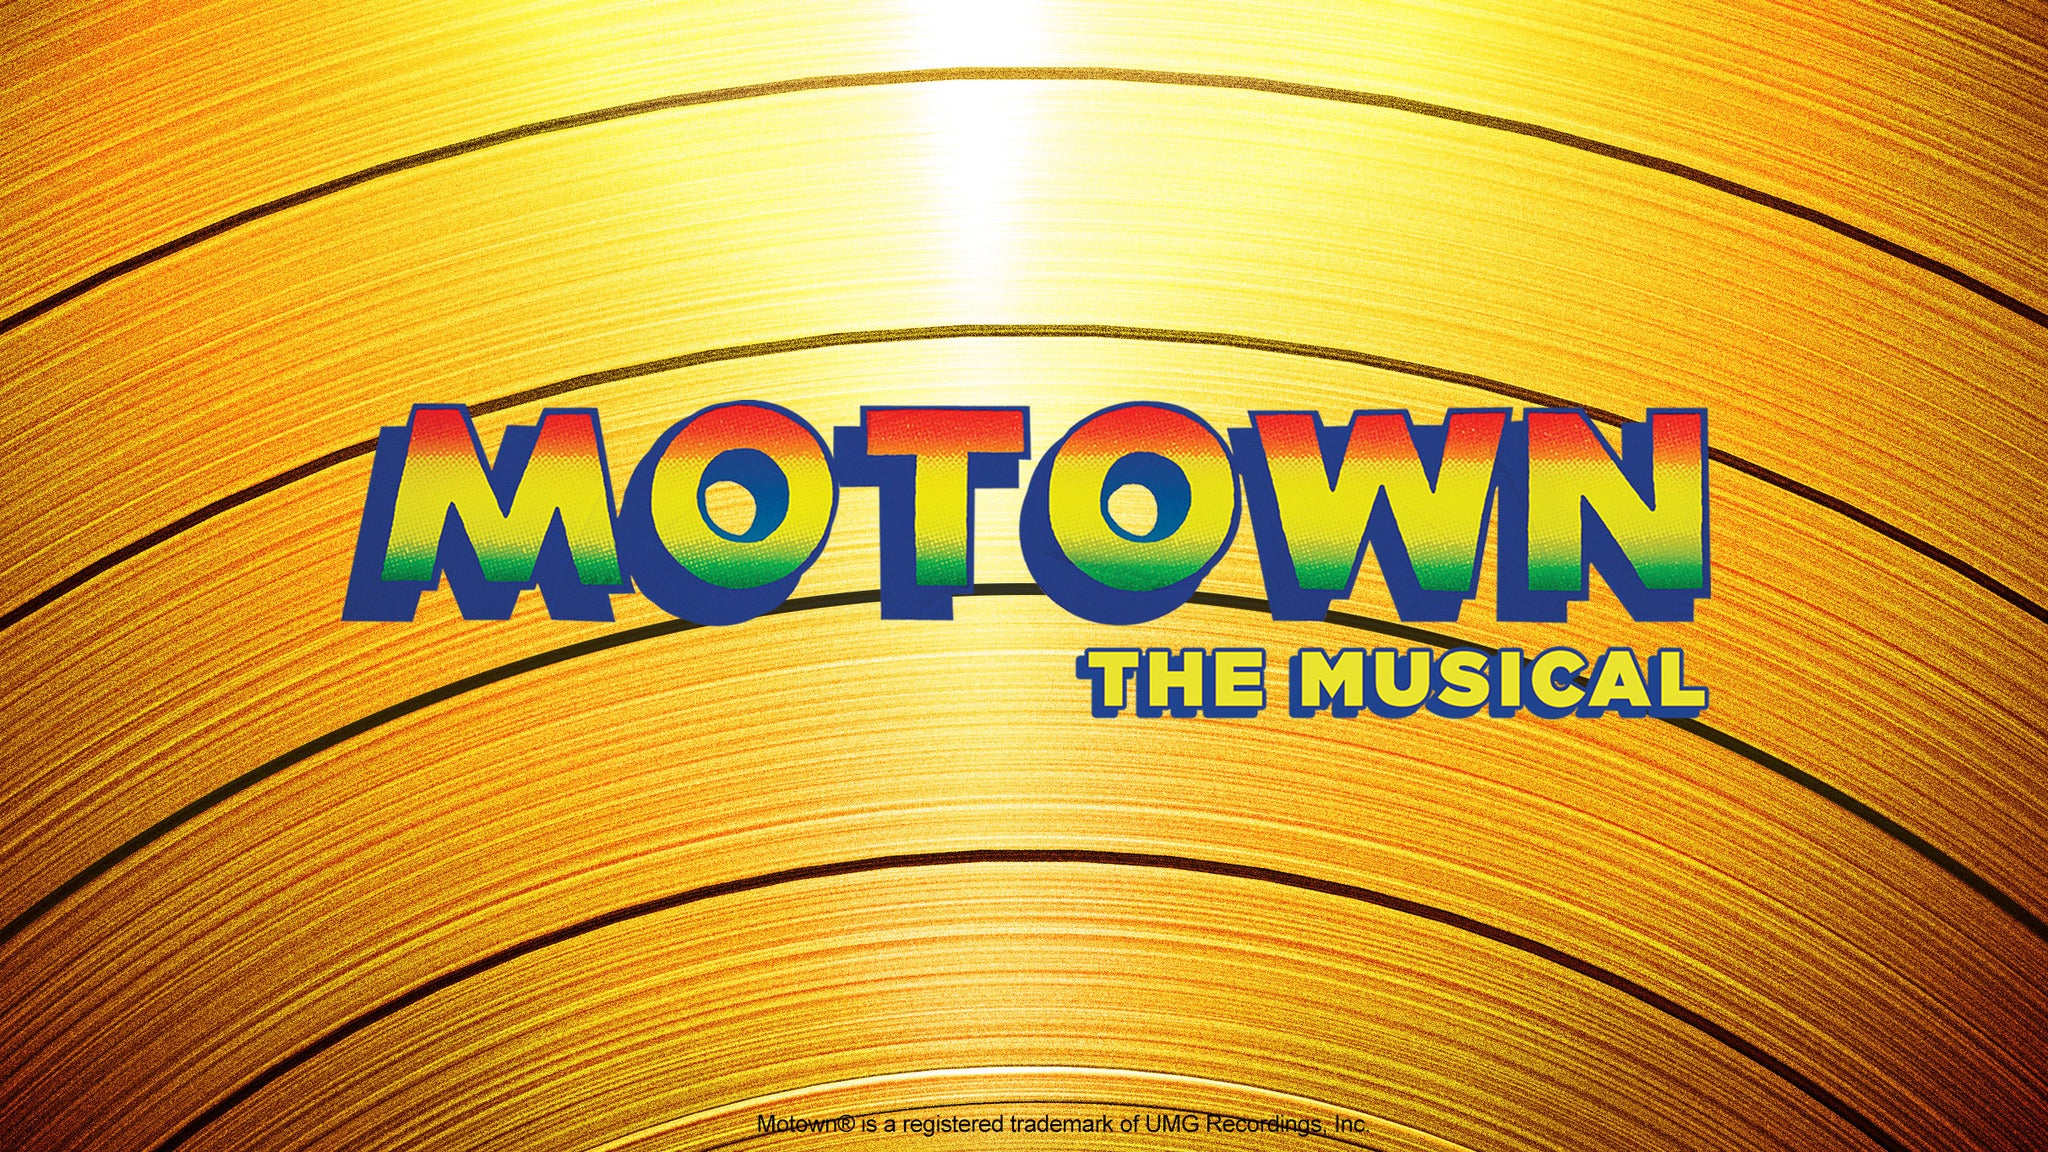 Motown the Musical (Touring) at Hollywood Pantages Theatre - Los Angeles, CA 90028